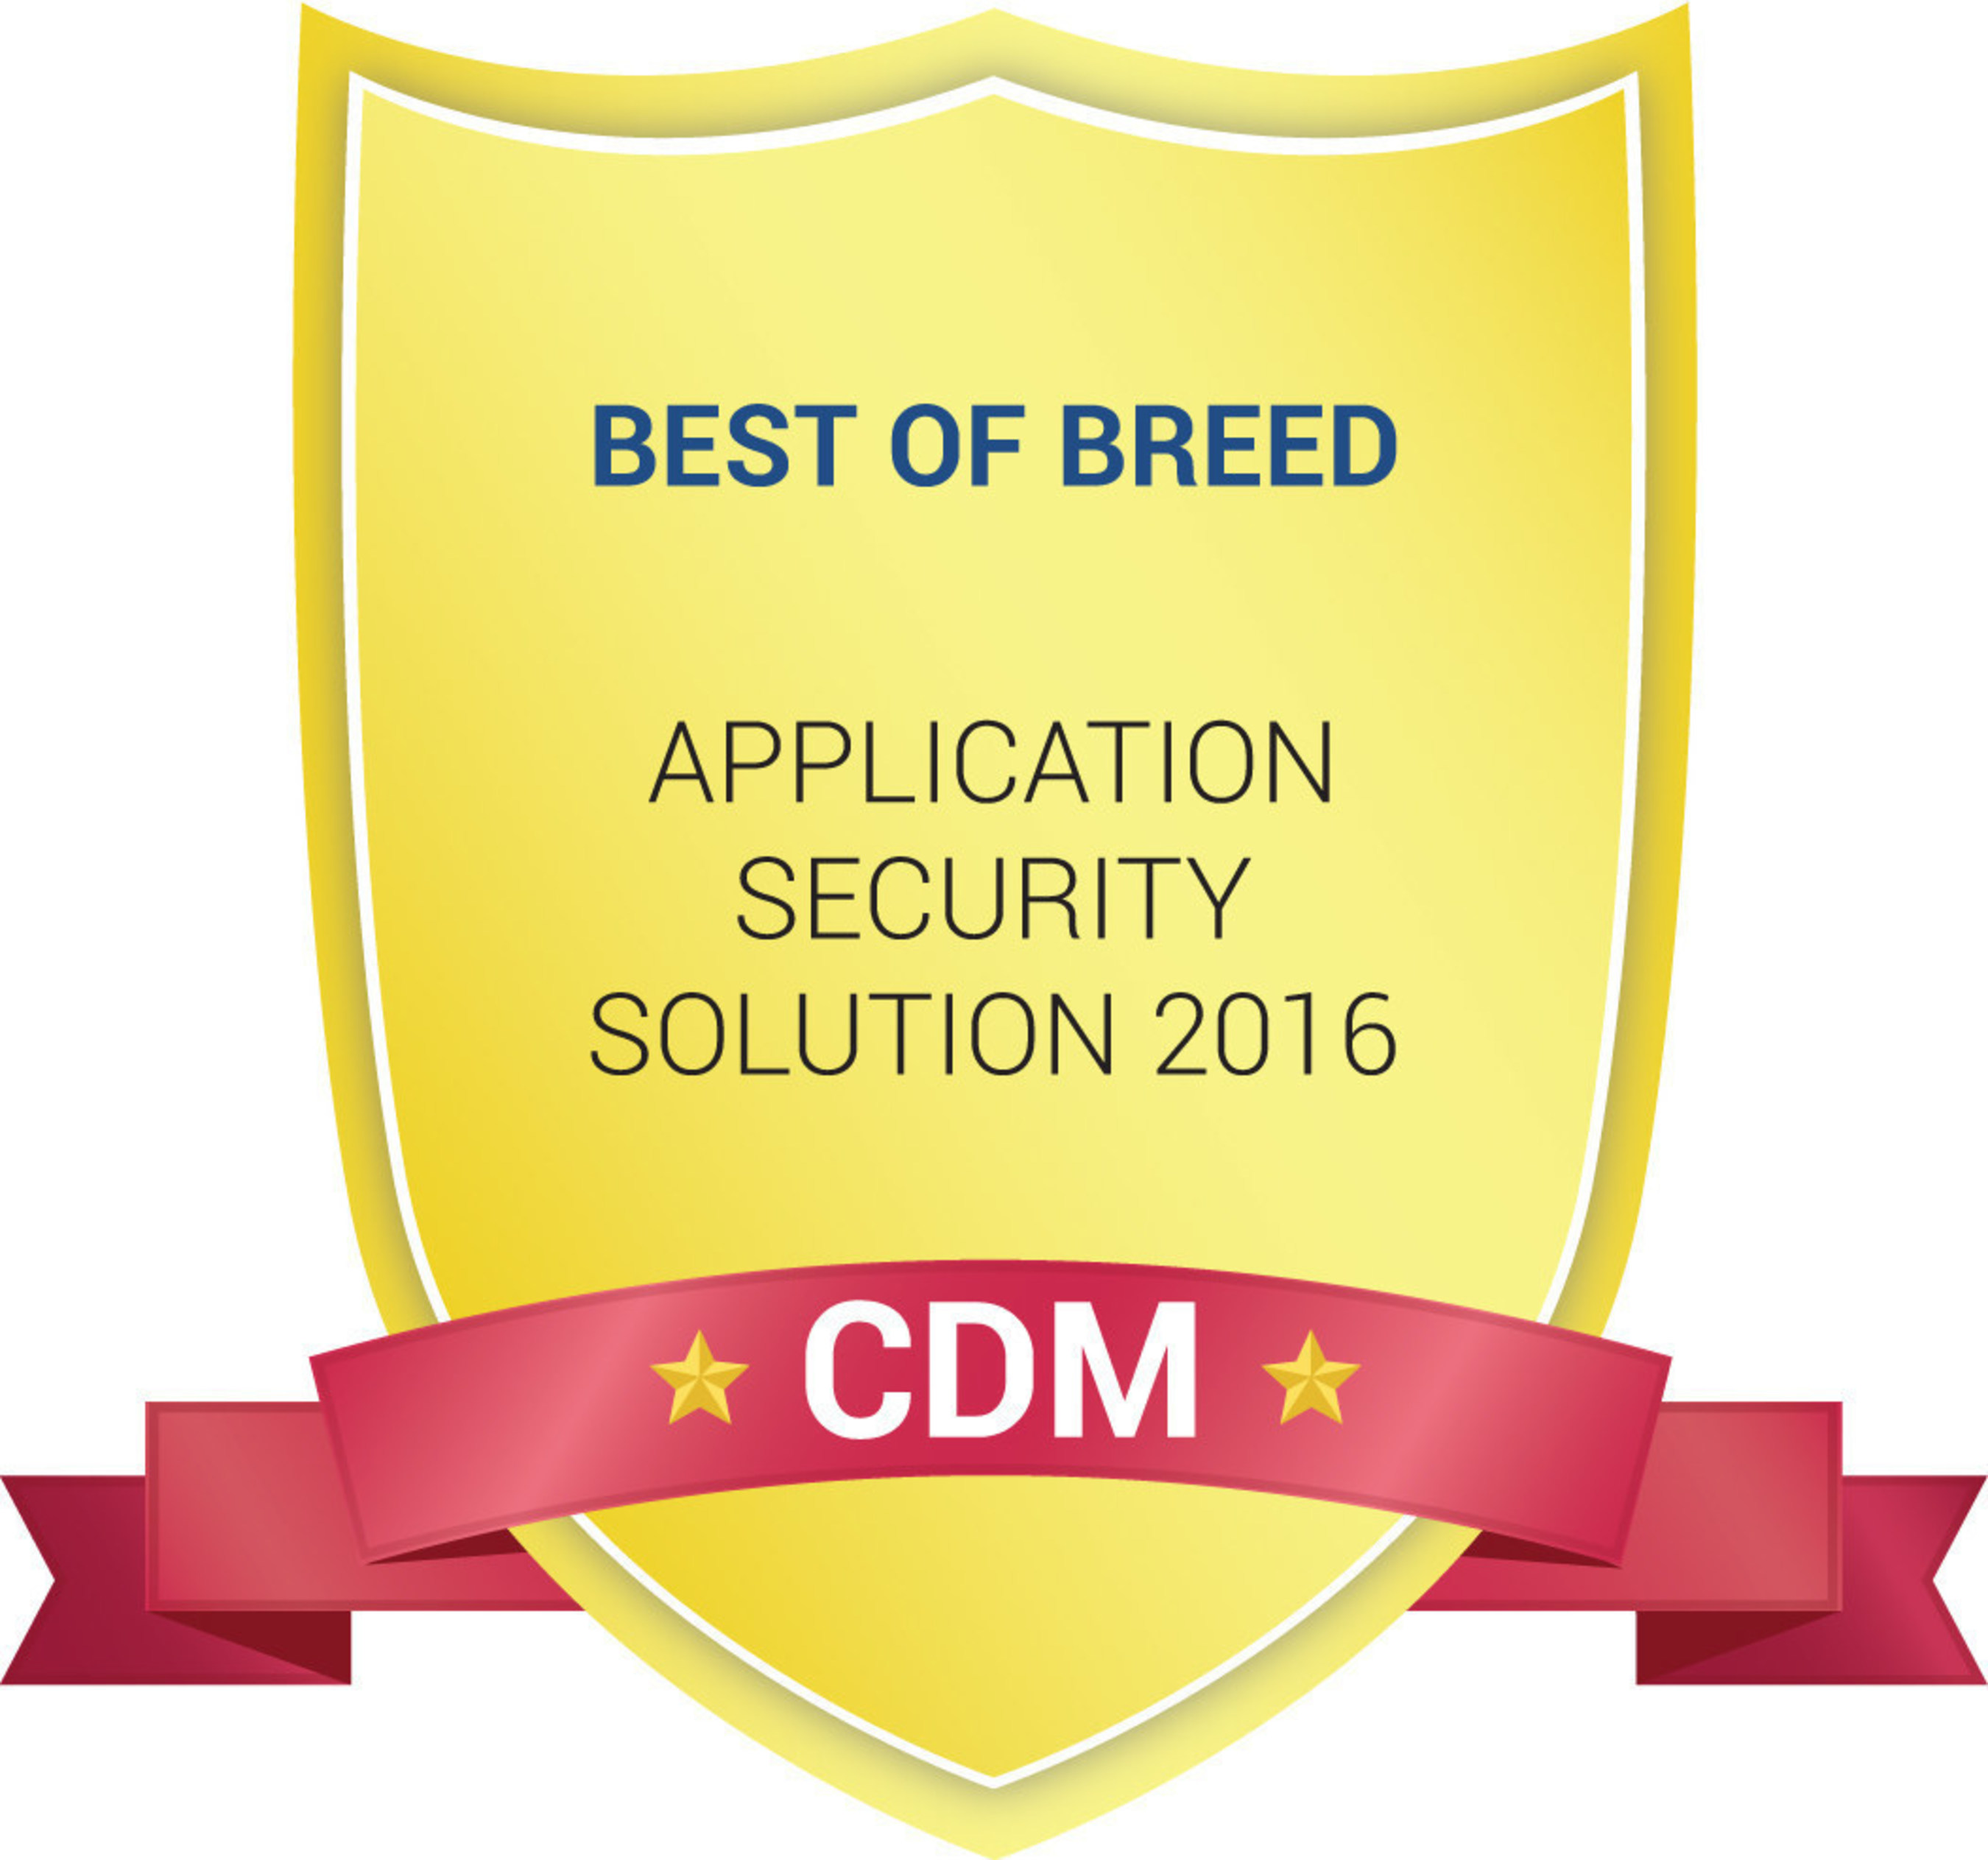 2016 Cyber Defense Magazine Winner - Contrast Security is Best of Breed in Application Security